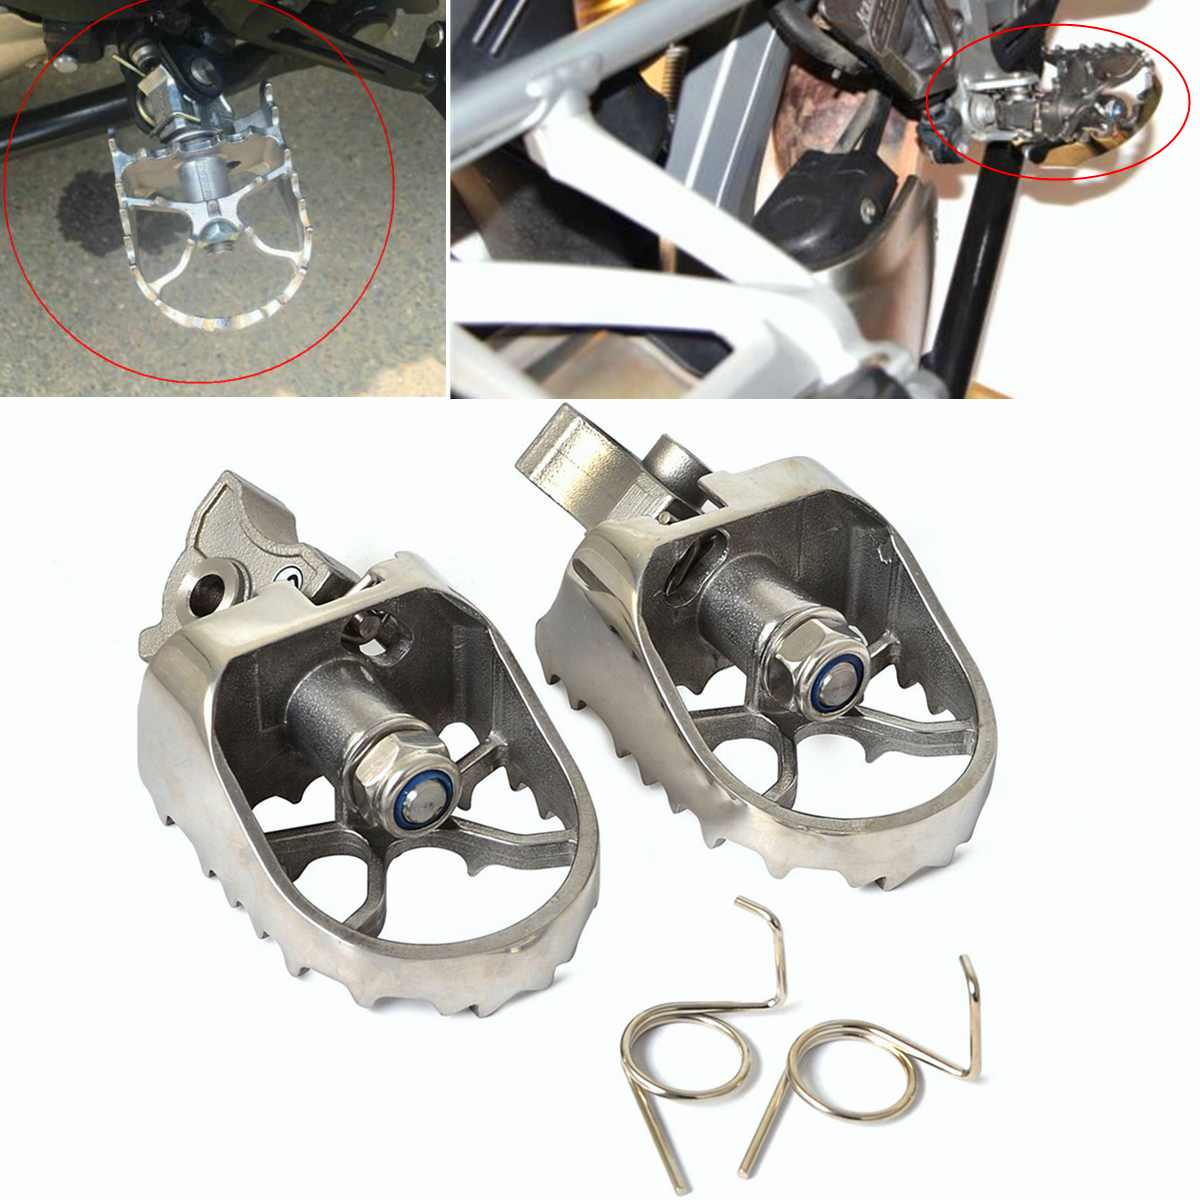 2pcs Motorcycle Front Footpegs Foot Rest Peg Fit for BMW R1200GS ADV 00 12 F650GS G650GS